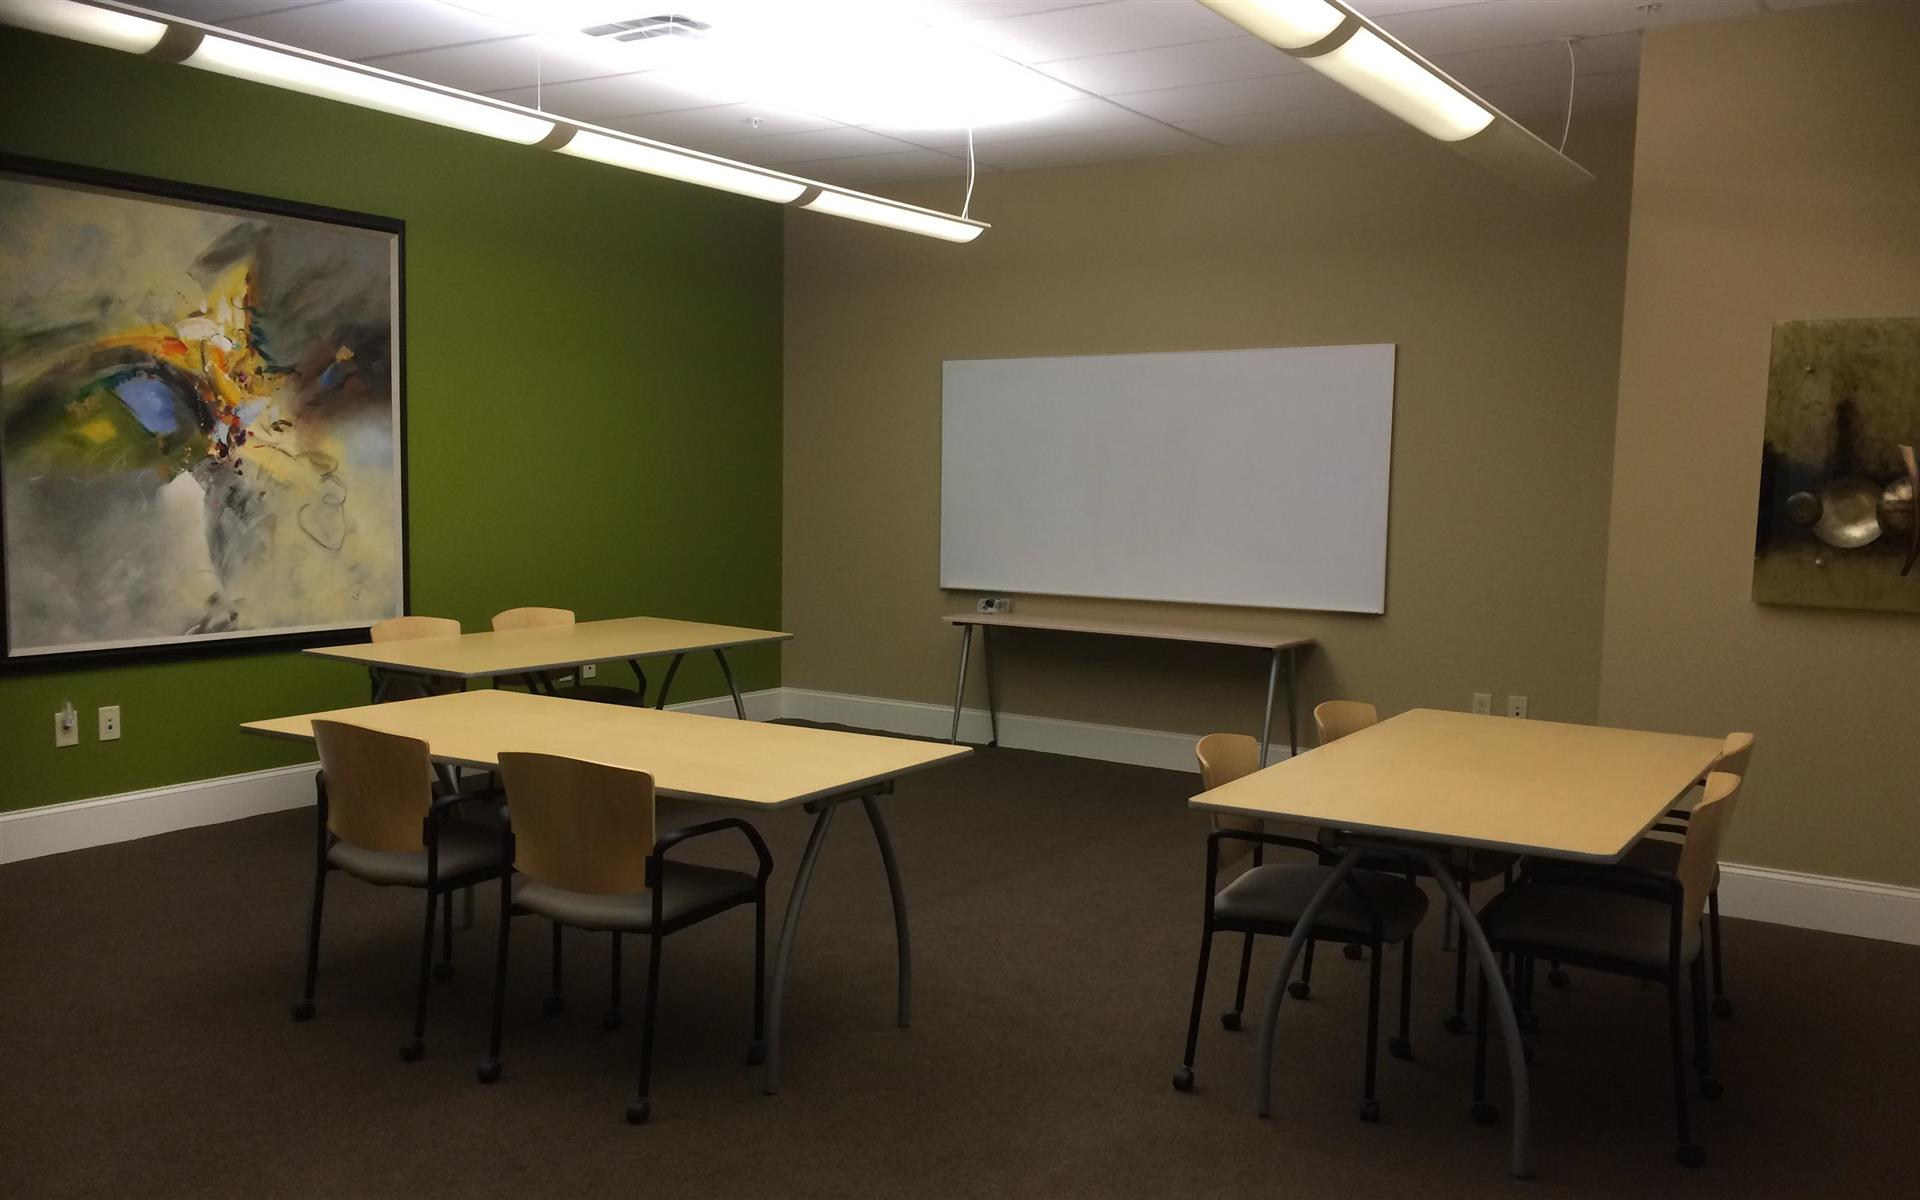 C Suites Executive Offices - Innovations Room